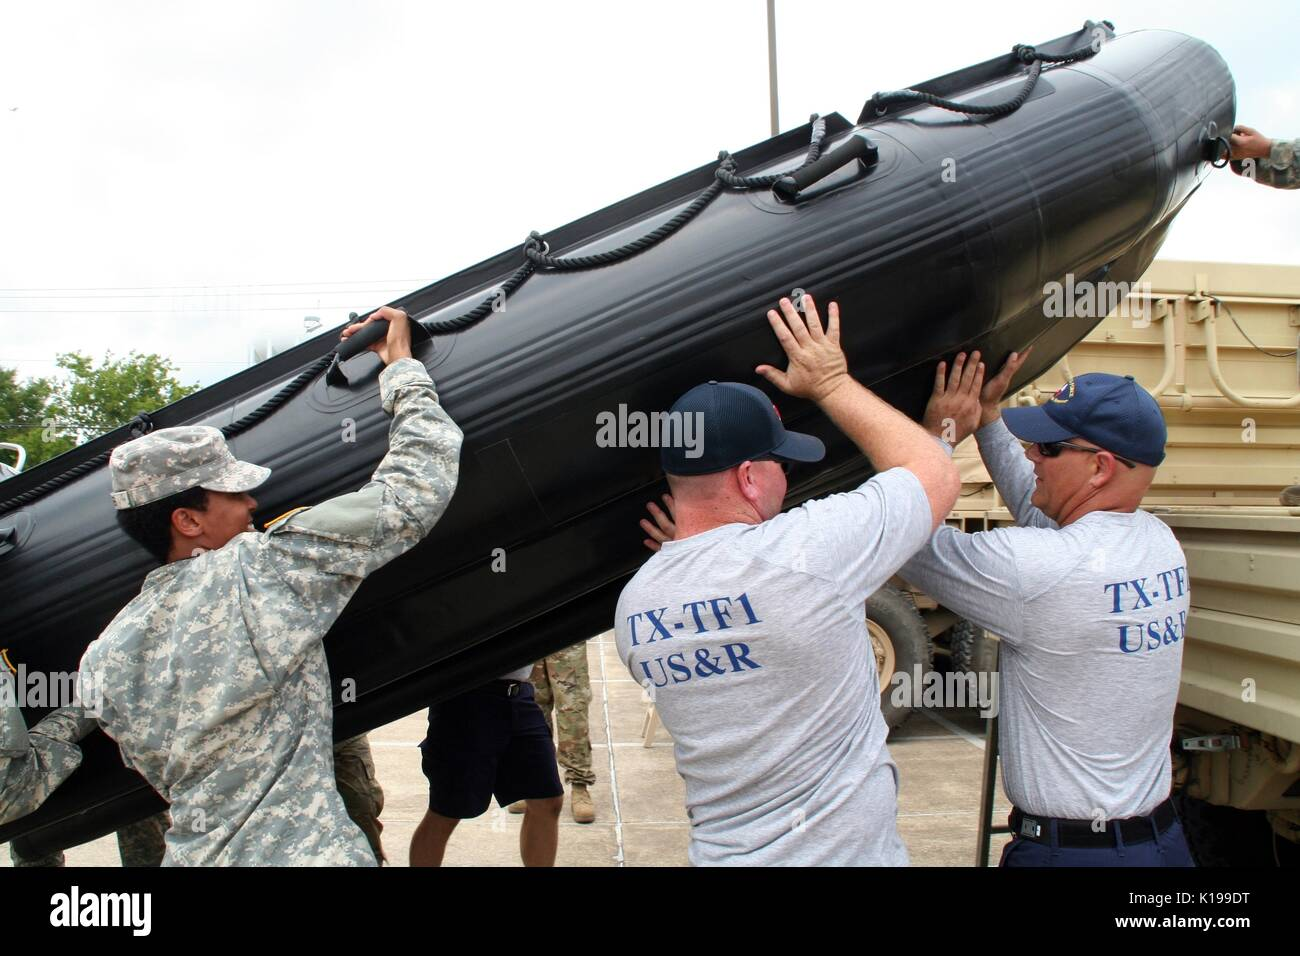 U.S. Texas Army National Guard soldiers joined members of a Texas Task Force One Swift Water Rescue Team loading a Zodiac boat in preparation for Hurricane Harvey August 25, 2017 in Bryan, Texas. Hurricane Harvey is now a category 4 storm expected to hit the Texas coast causing major damage and flooding. - Stock Image